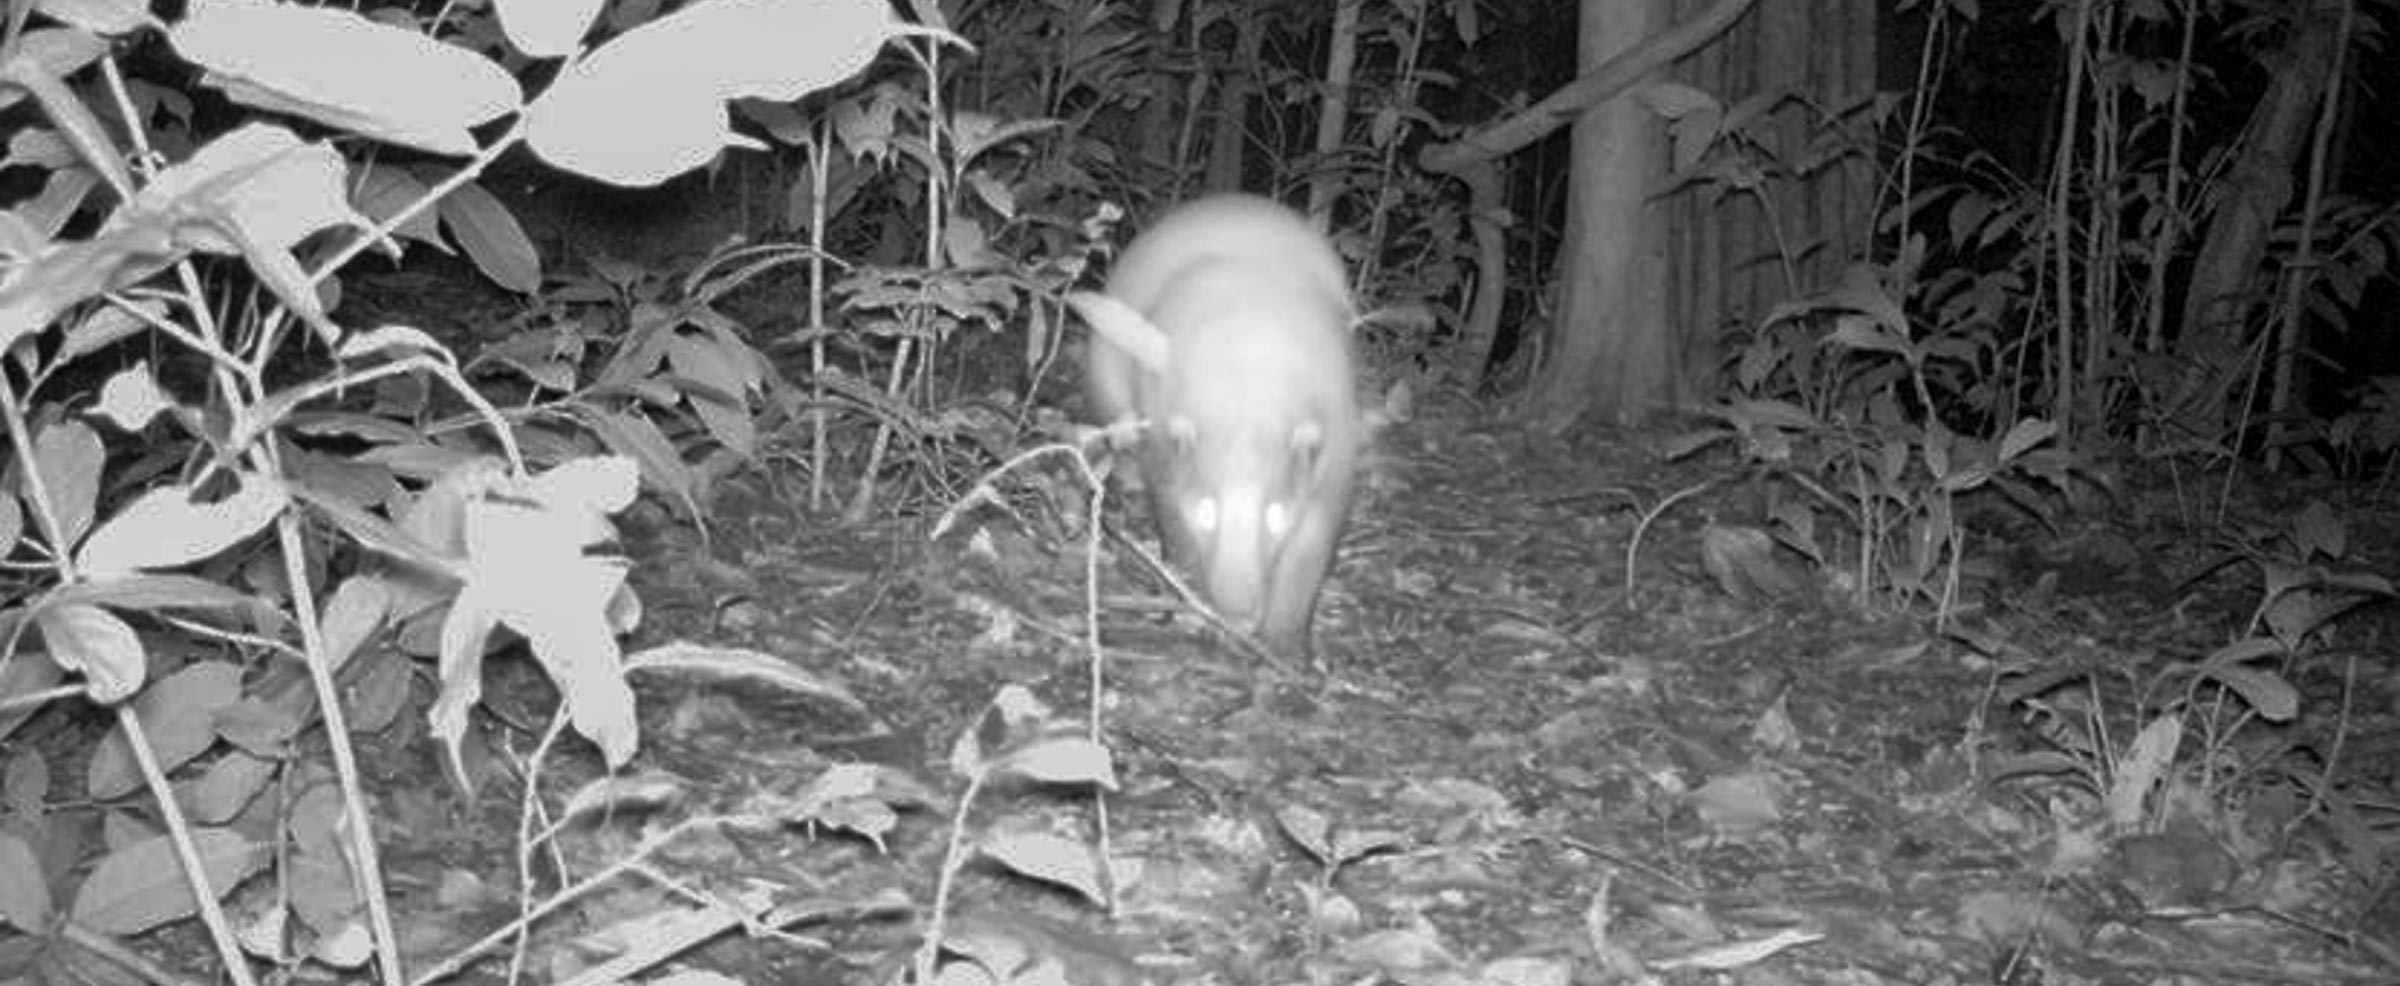 Tracking a hog badger with the help of a camera trap.